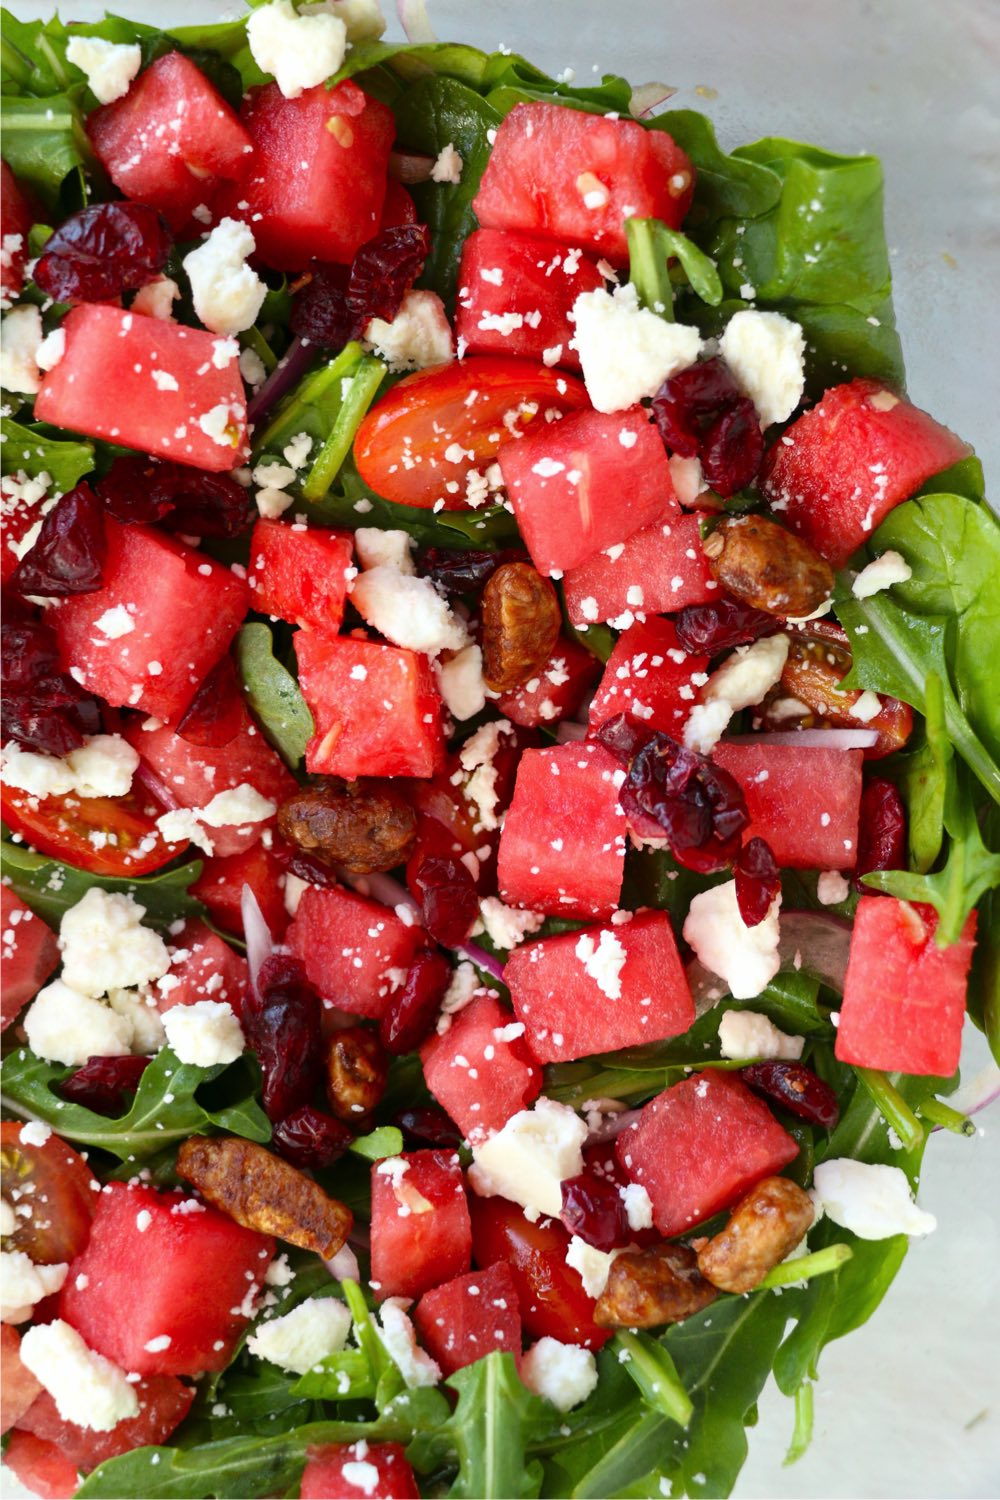 watermelon, feta and greens in a salad